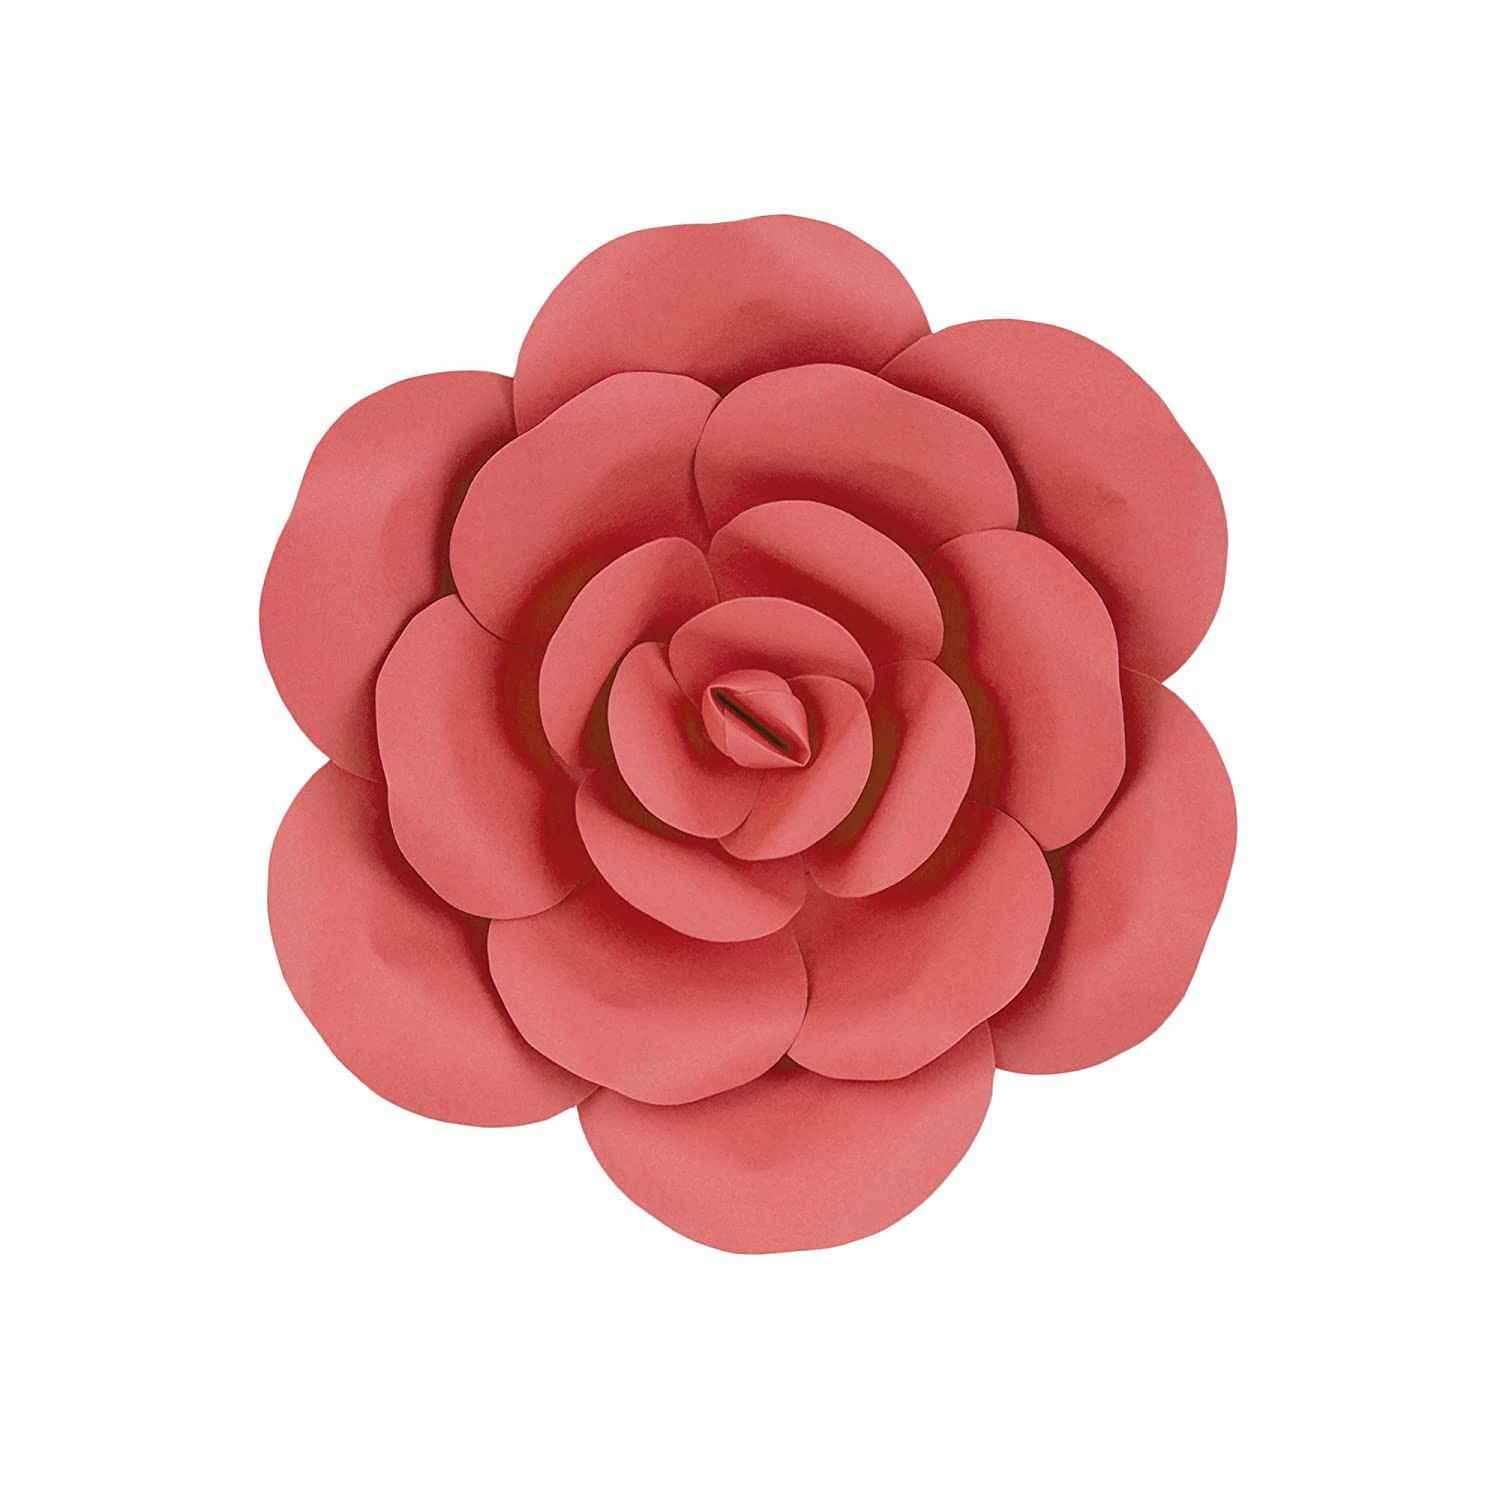 Mega Crafts 12 Handmade Paper Flower In Coral For Home Decor Wedding Bouquets Receptions Event Flower Planning Table Centerpieces Backdrop